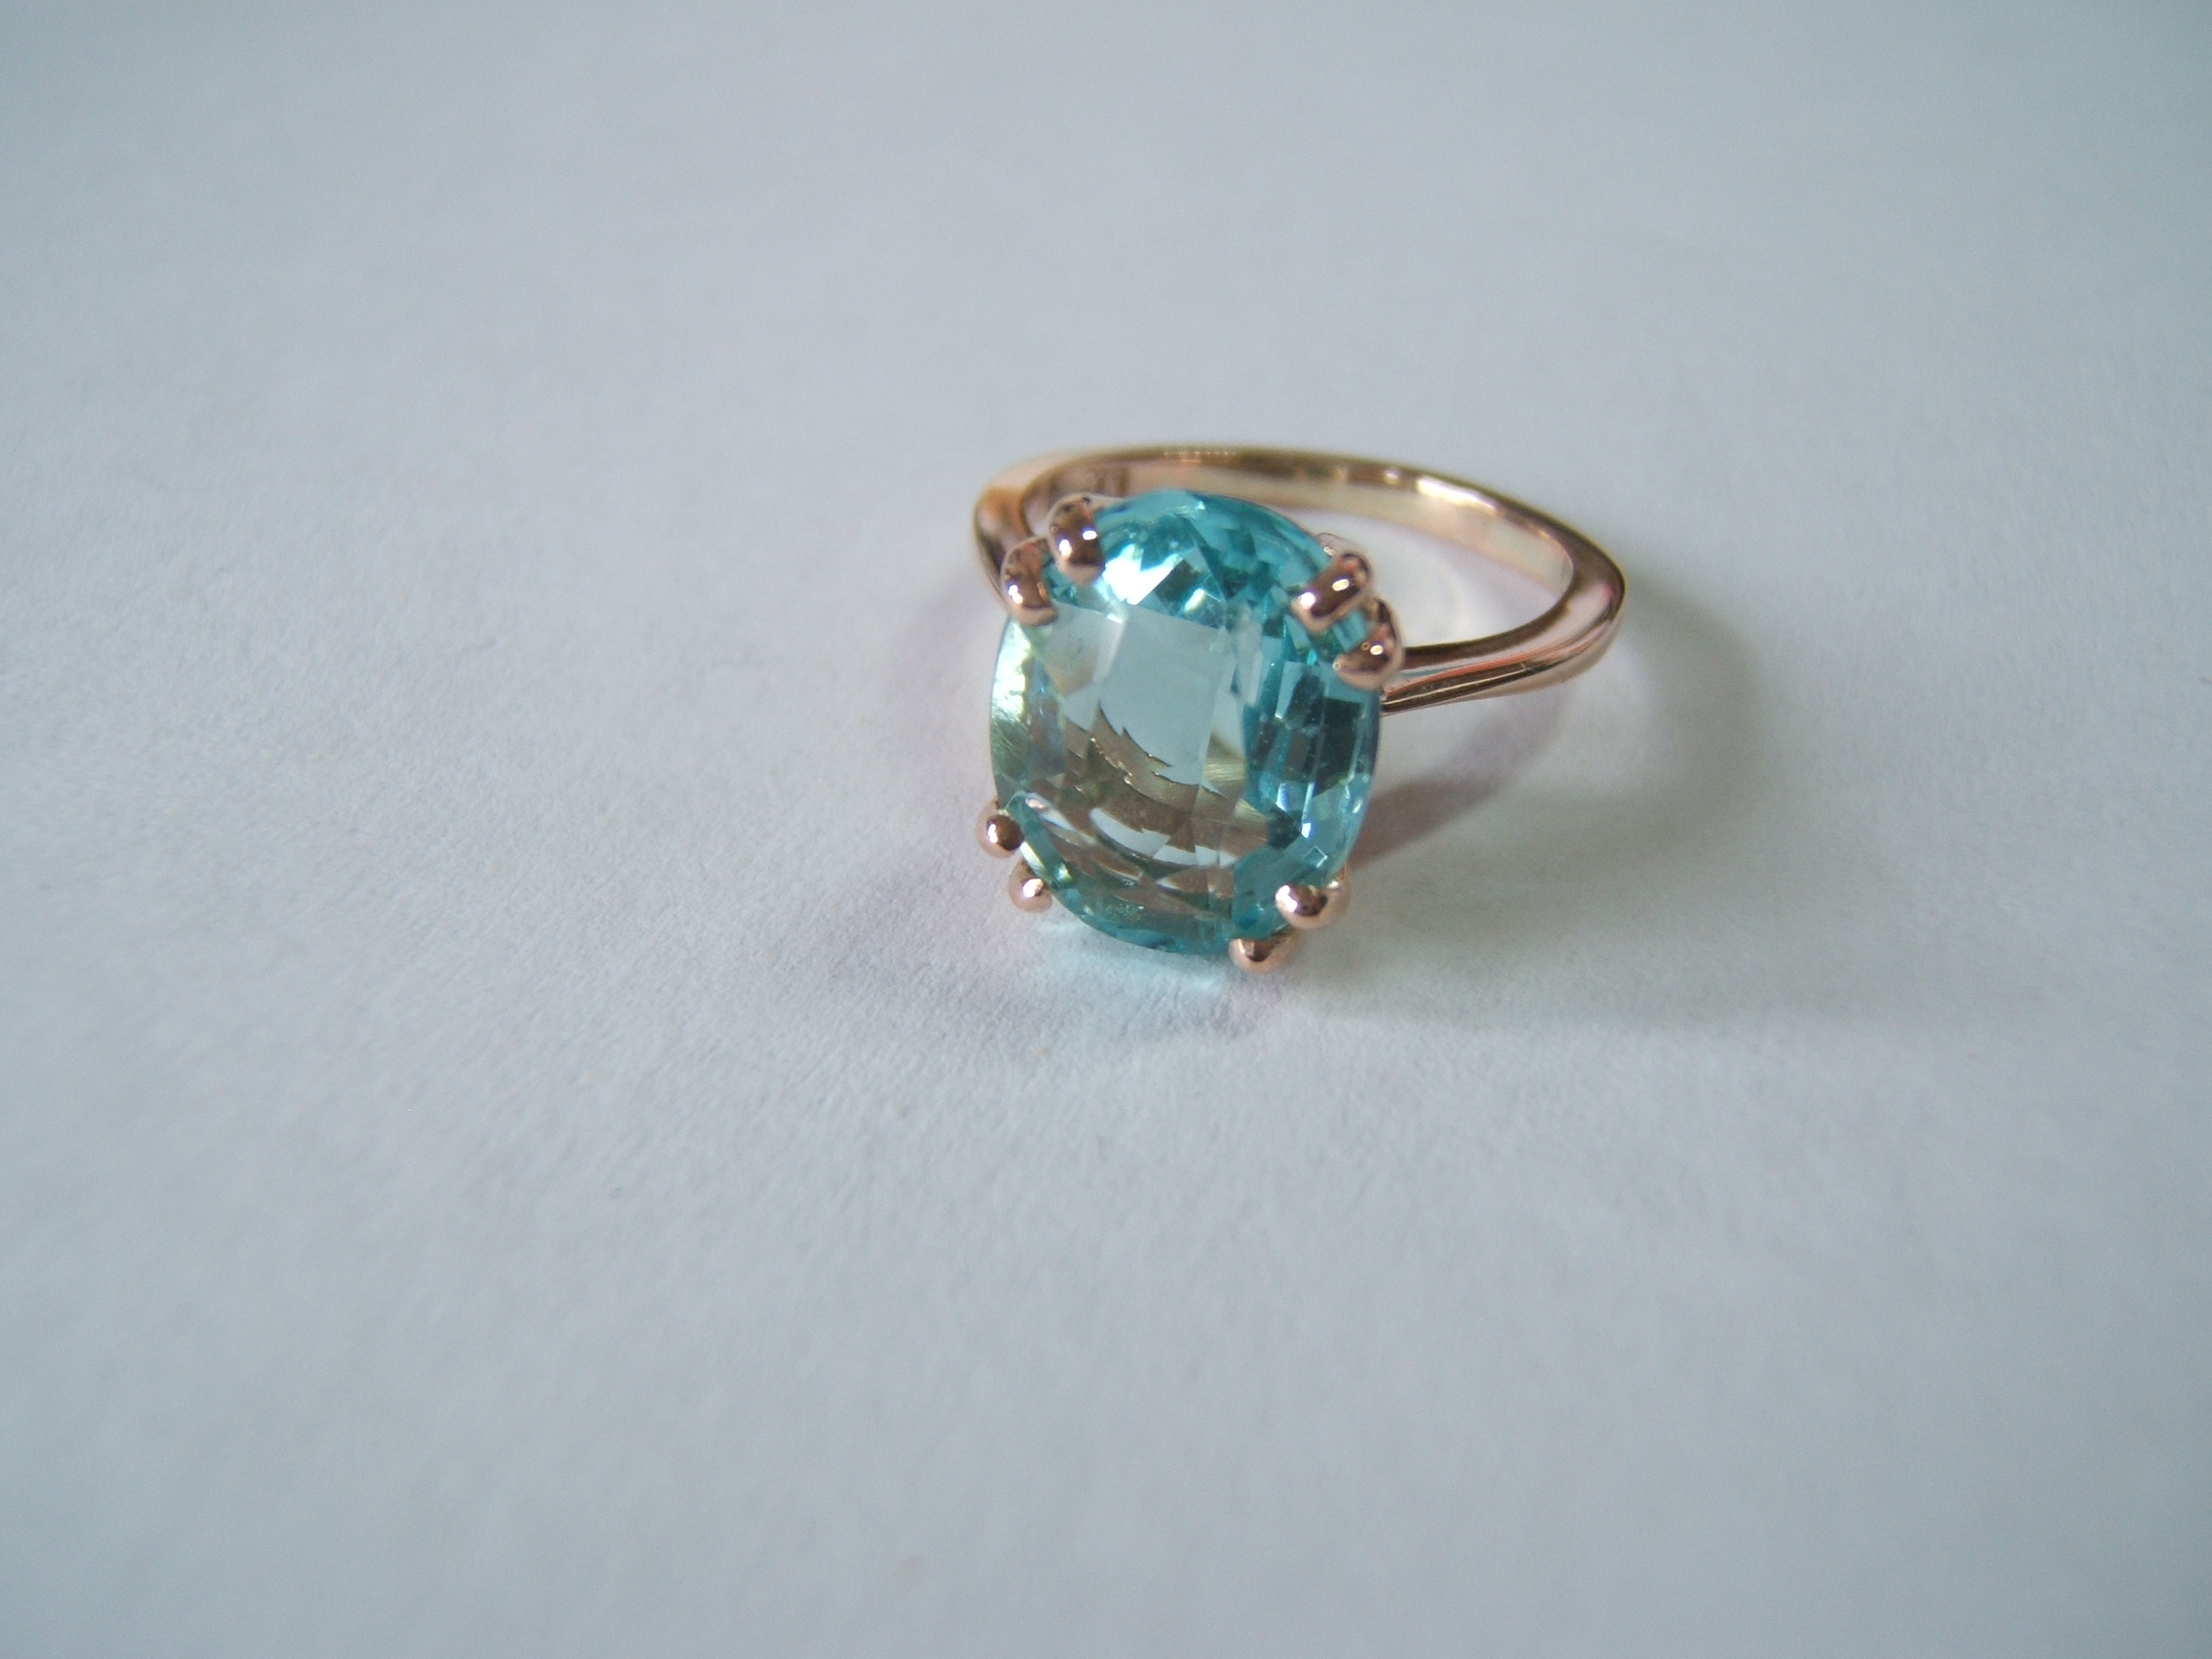 rose gold ringset with a beautiful;faceted topaz by helen burrell